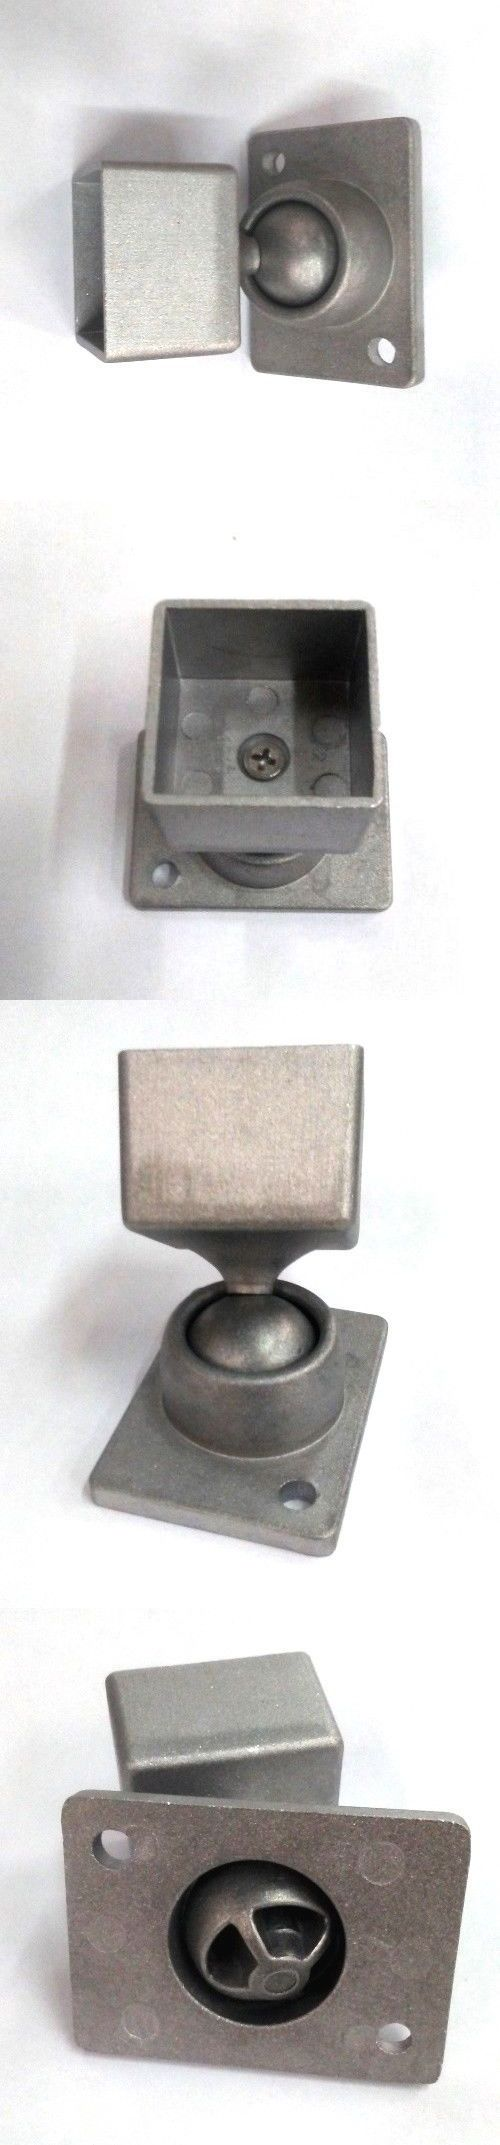 Details About 1 1 4 Sq Swivel Ball Wall Bracket With Small Base Wall Brackets Wall Mount Bracket Bracket